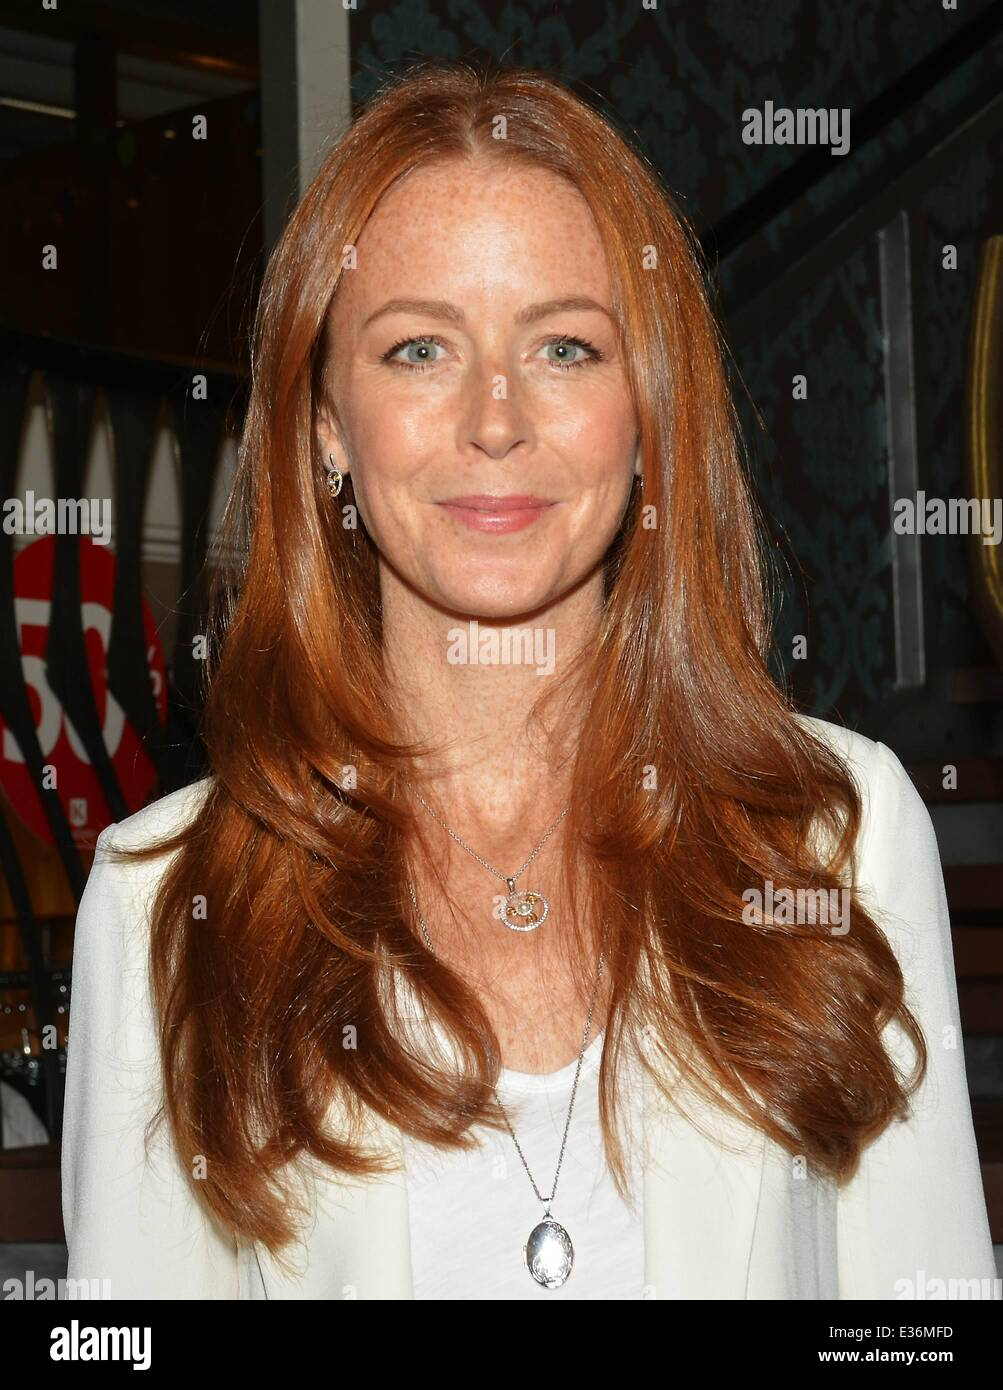 Riverdance's original leading lady Jean Butler makes an ...